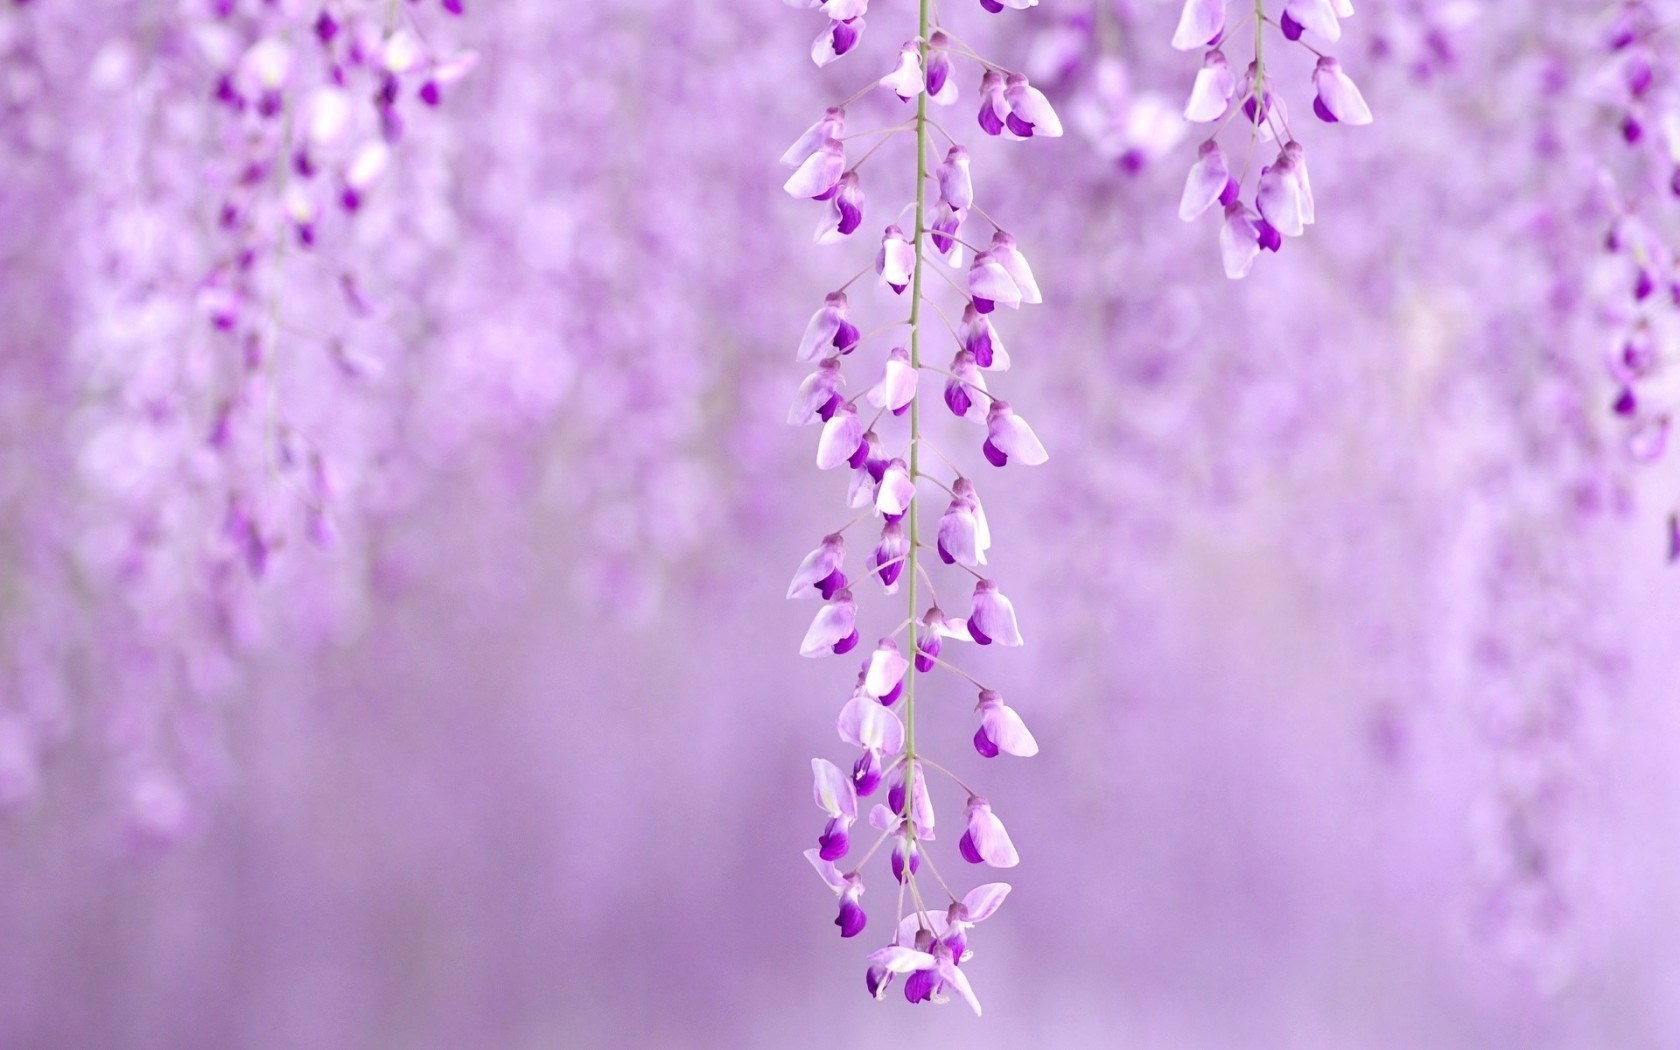 Flowers Wisteria Purple Nature Hd Desktop Wallpapers 4k Hd